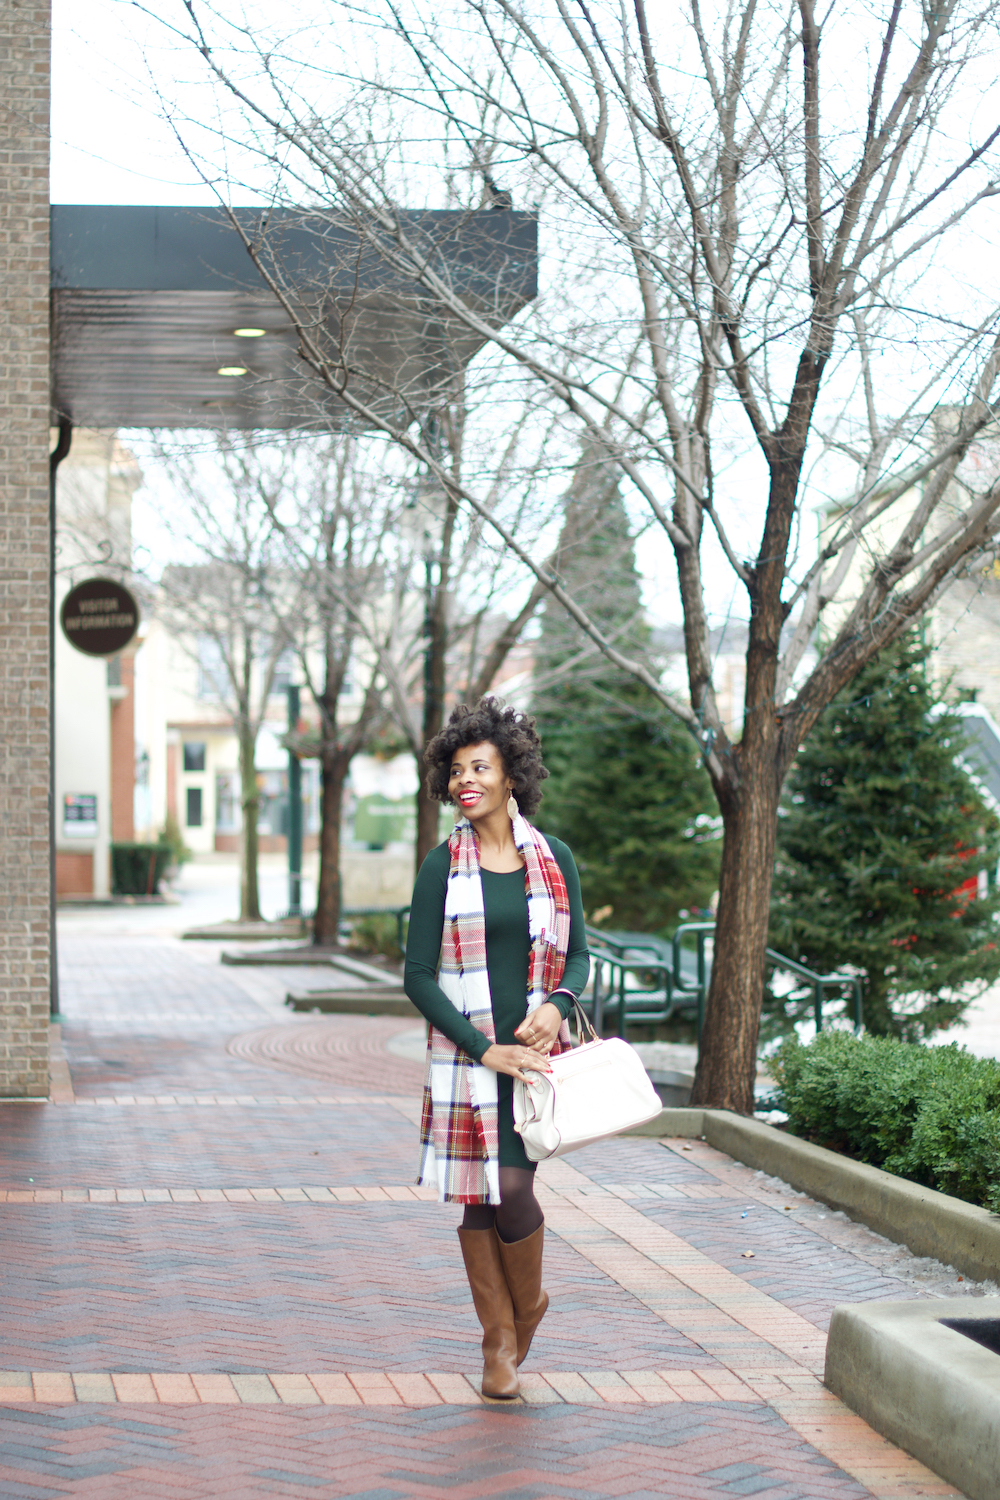 evergreen-hm-jersey-dress-holiday-style